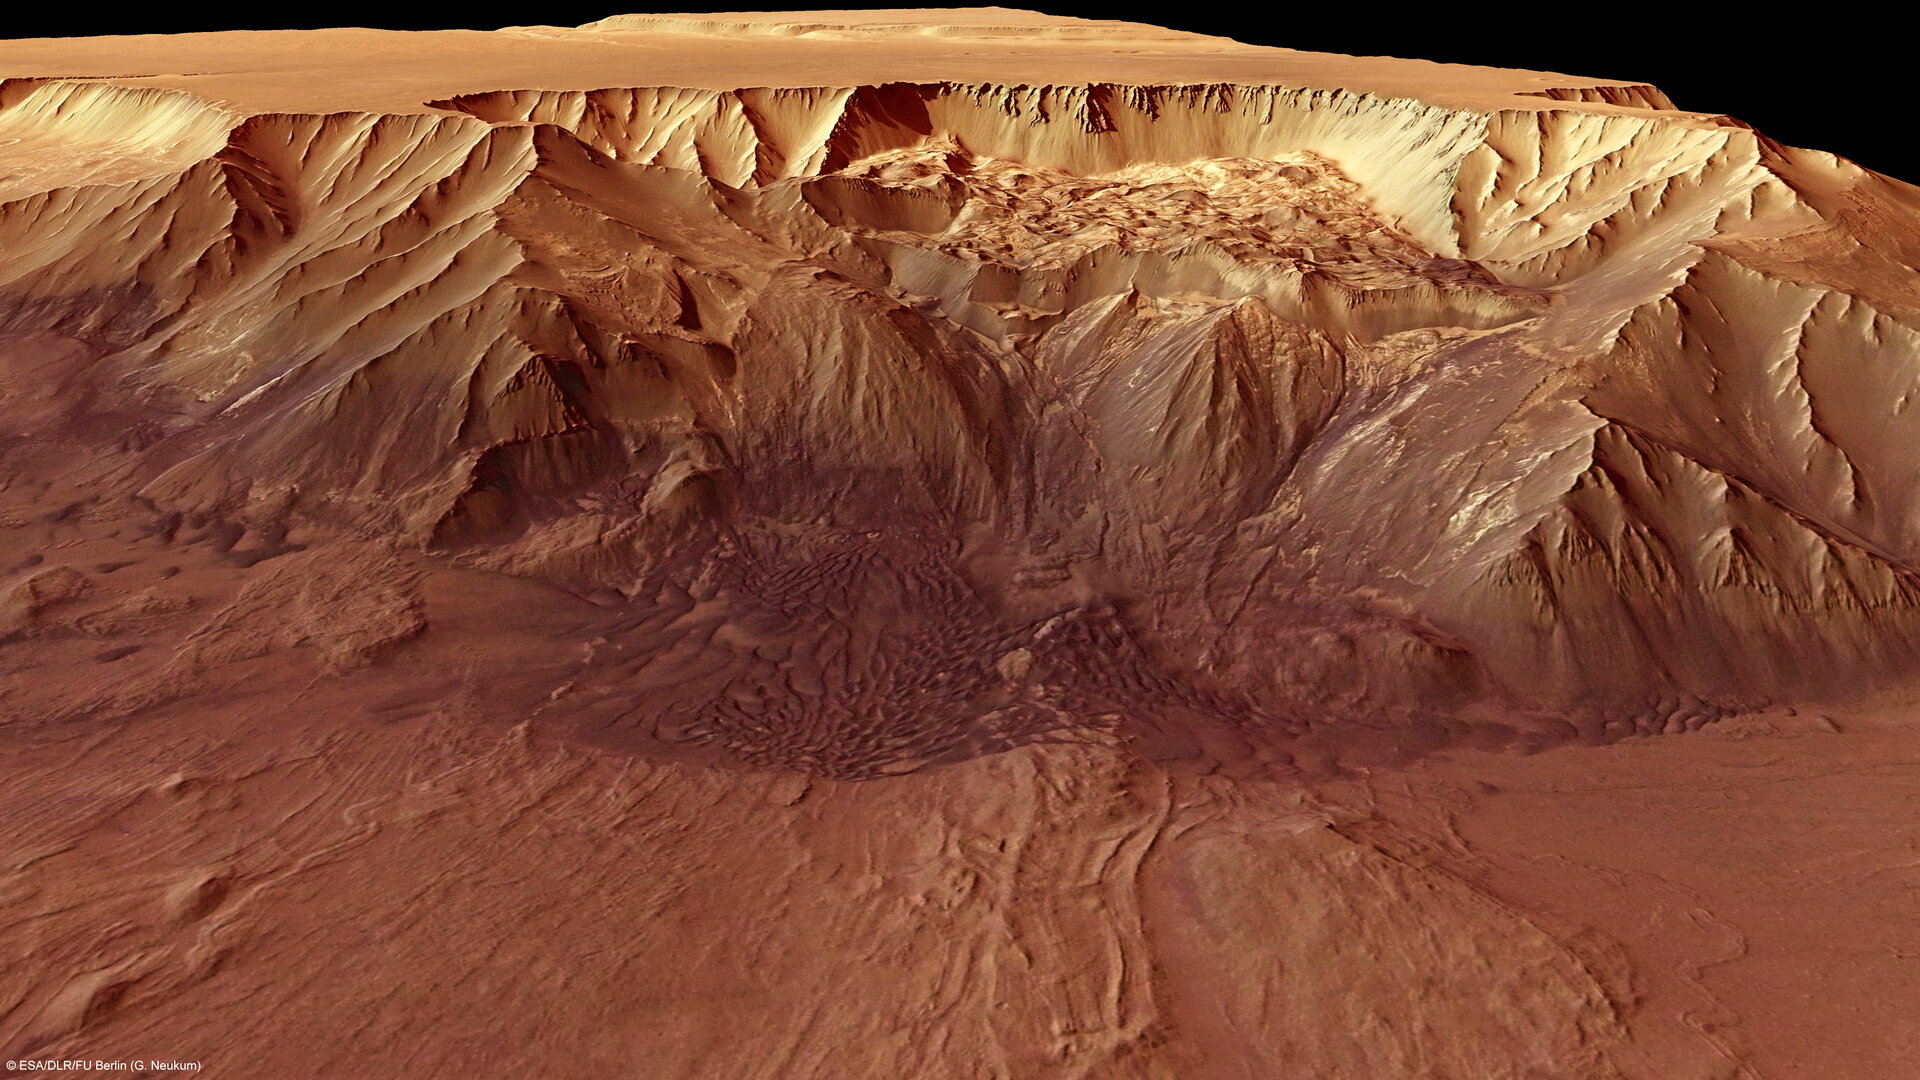 Perspective view of the Melas Chasma